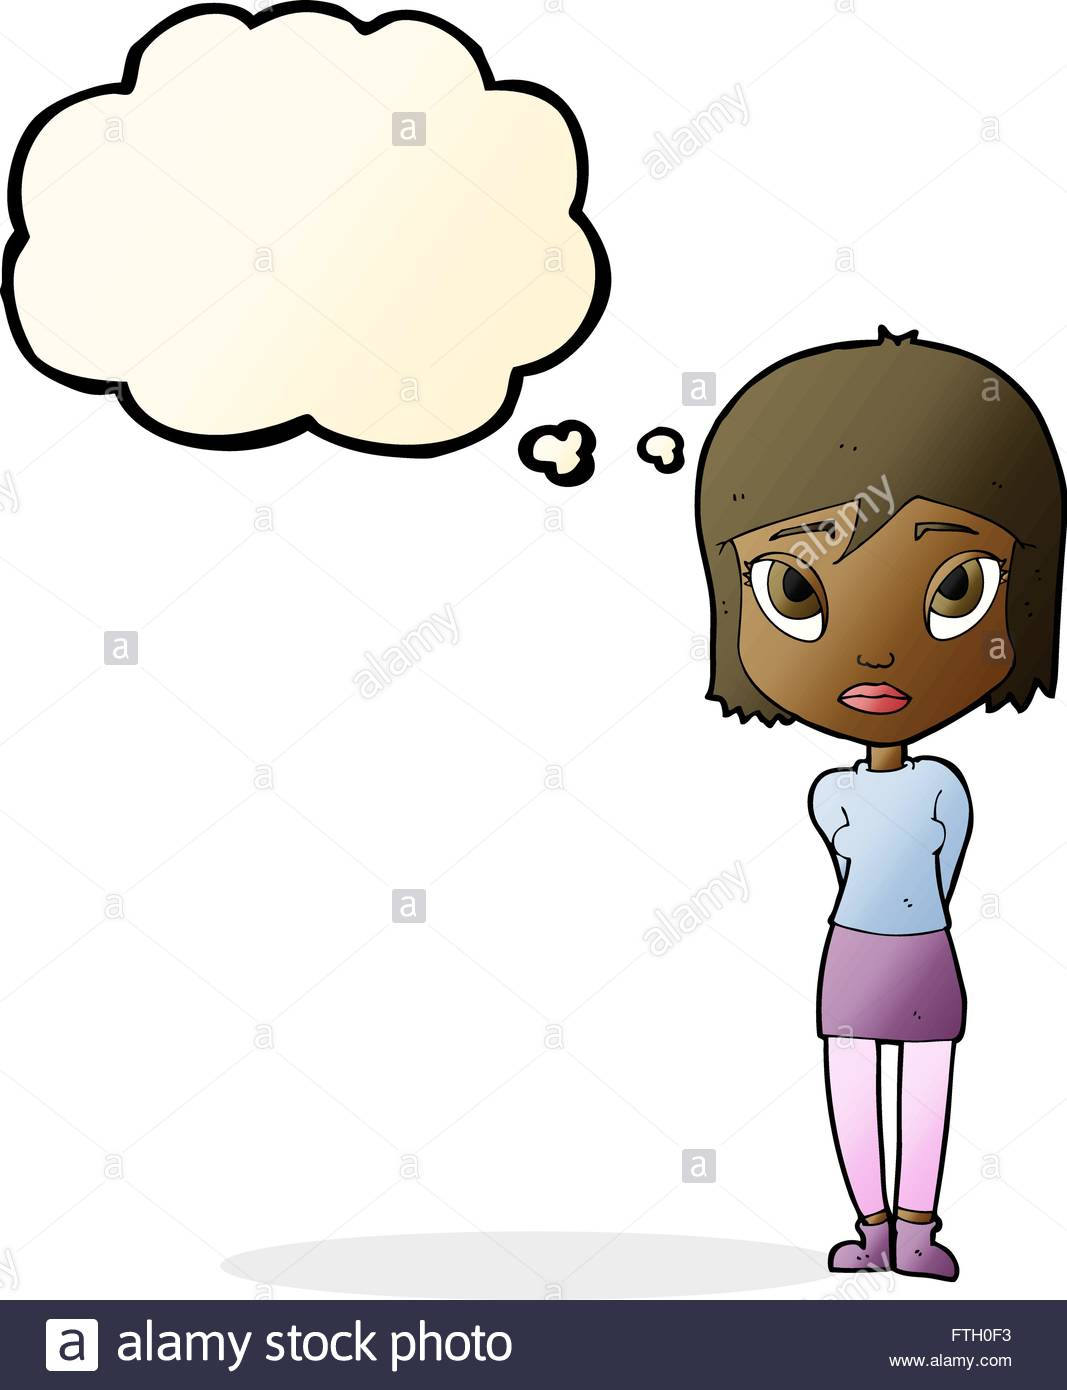 1067x1390 Cartoon Shy Girl With Thought Bubble Stock Vector Art